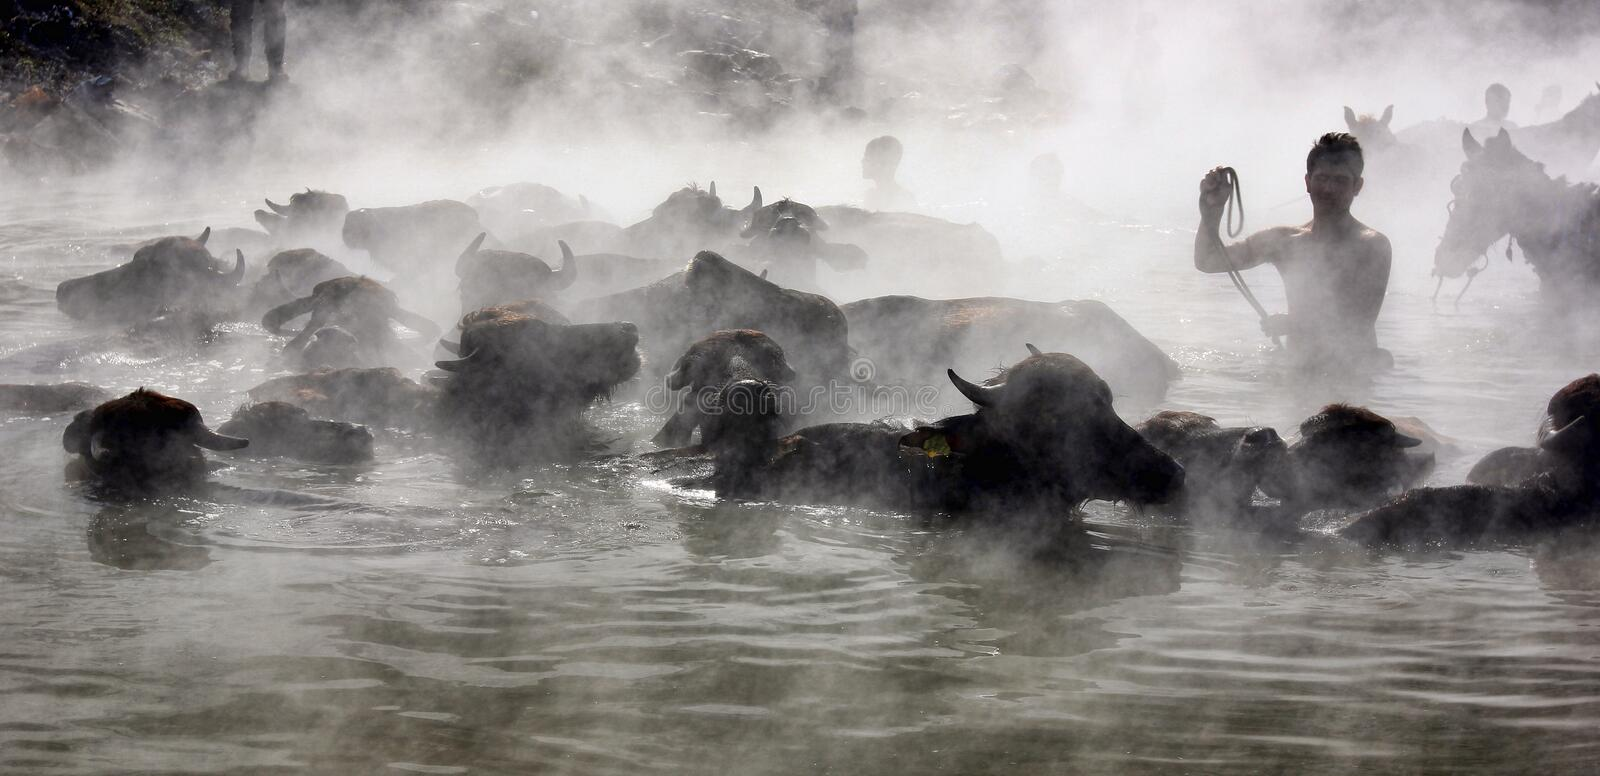 Herding buffalos in hot water in winter royalty free stock photography